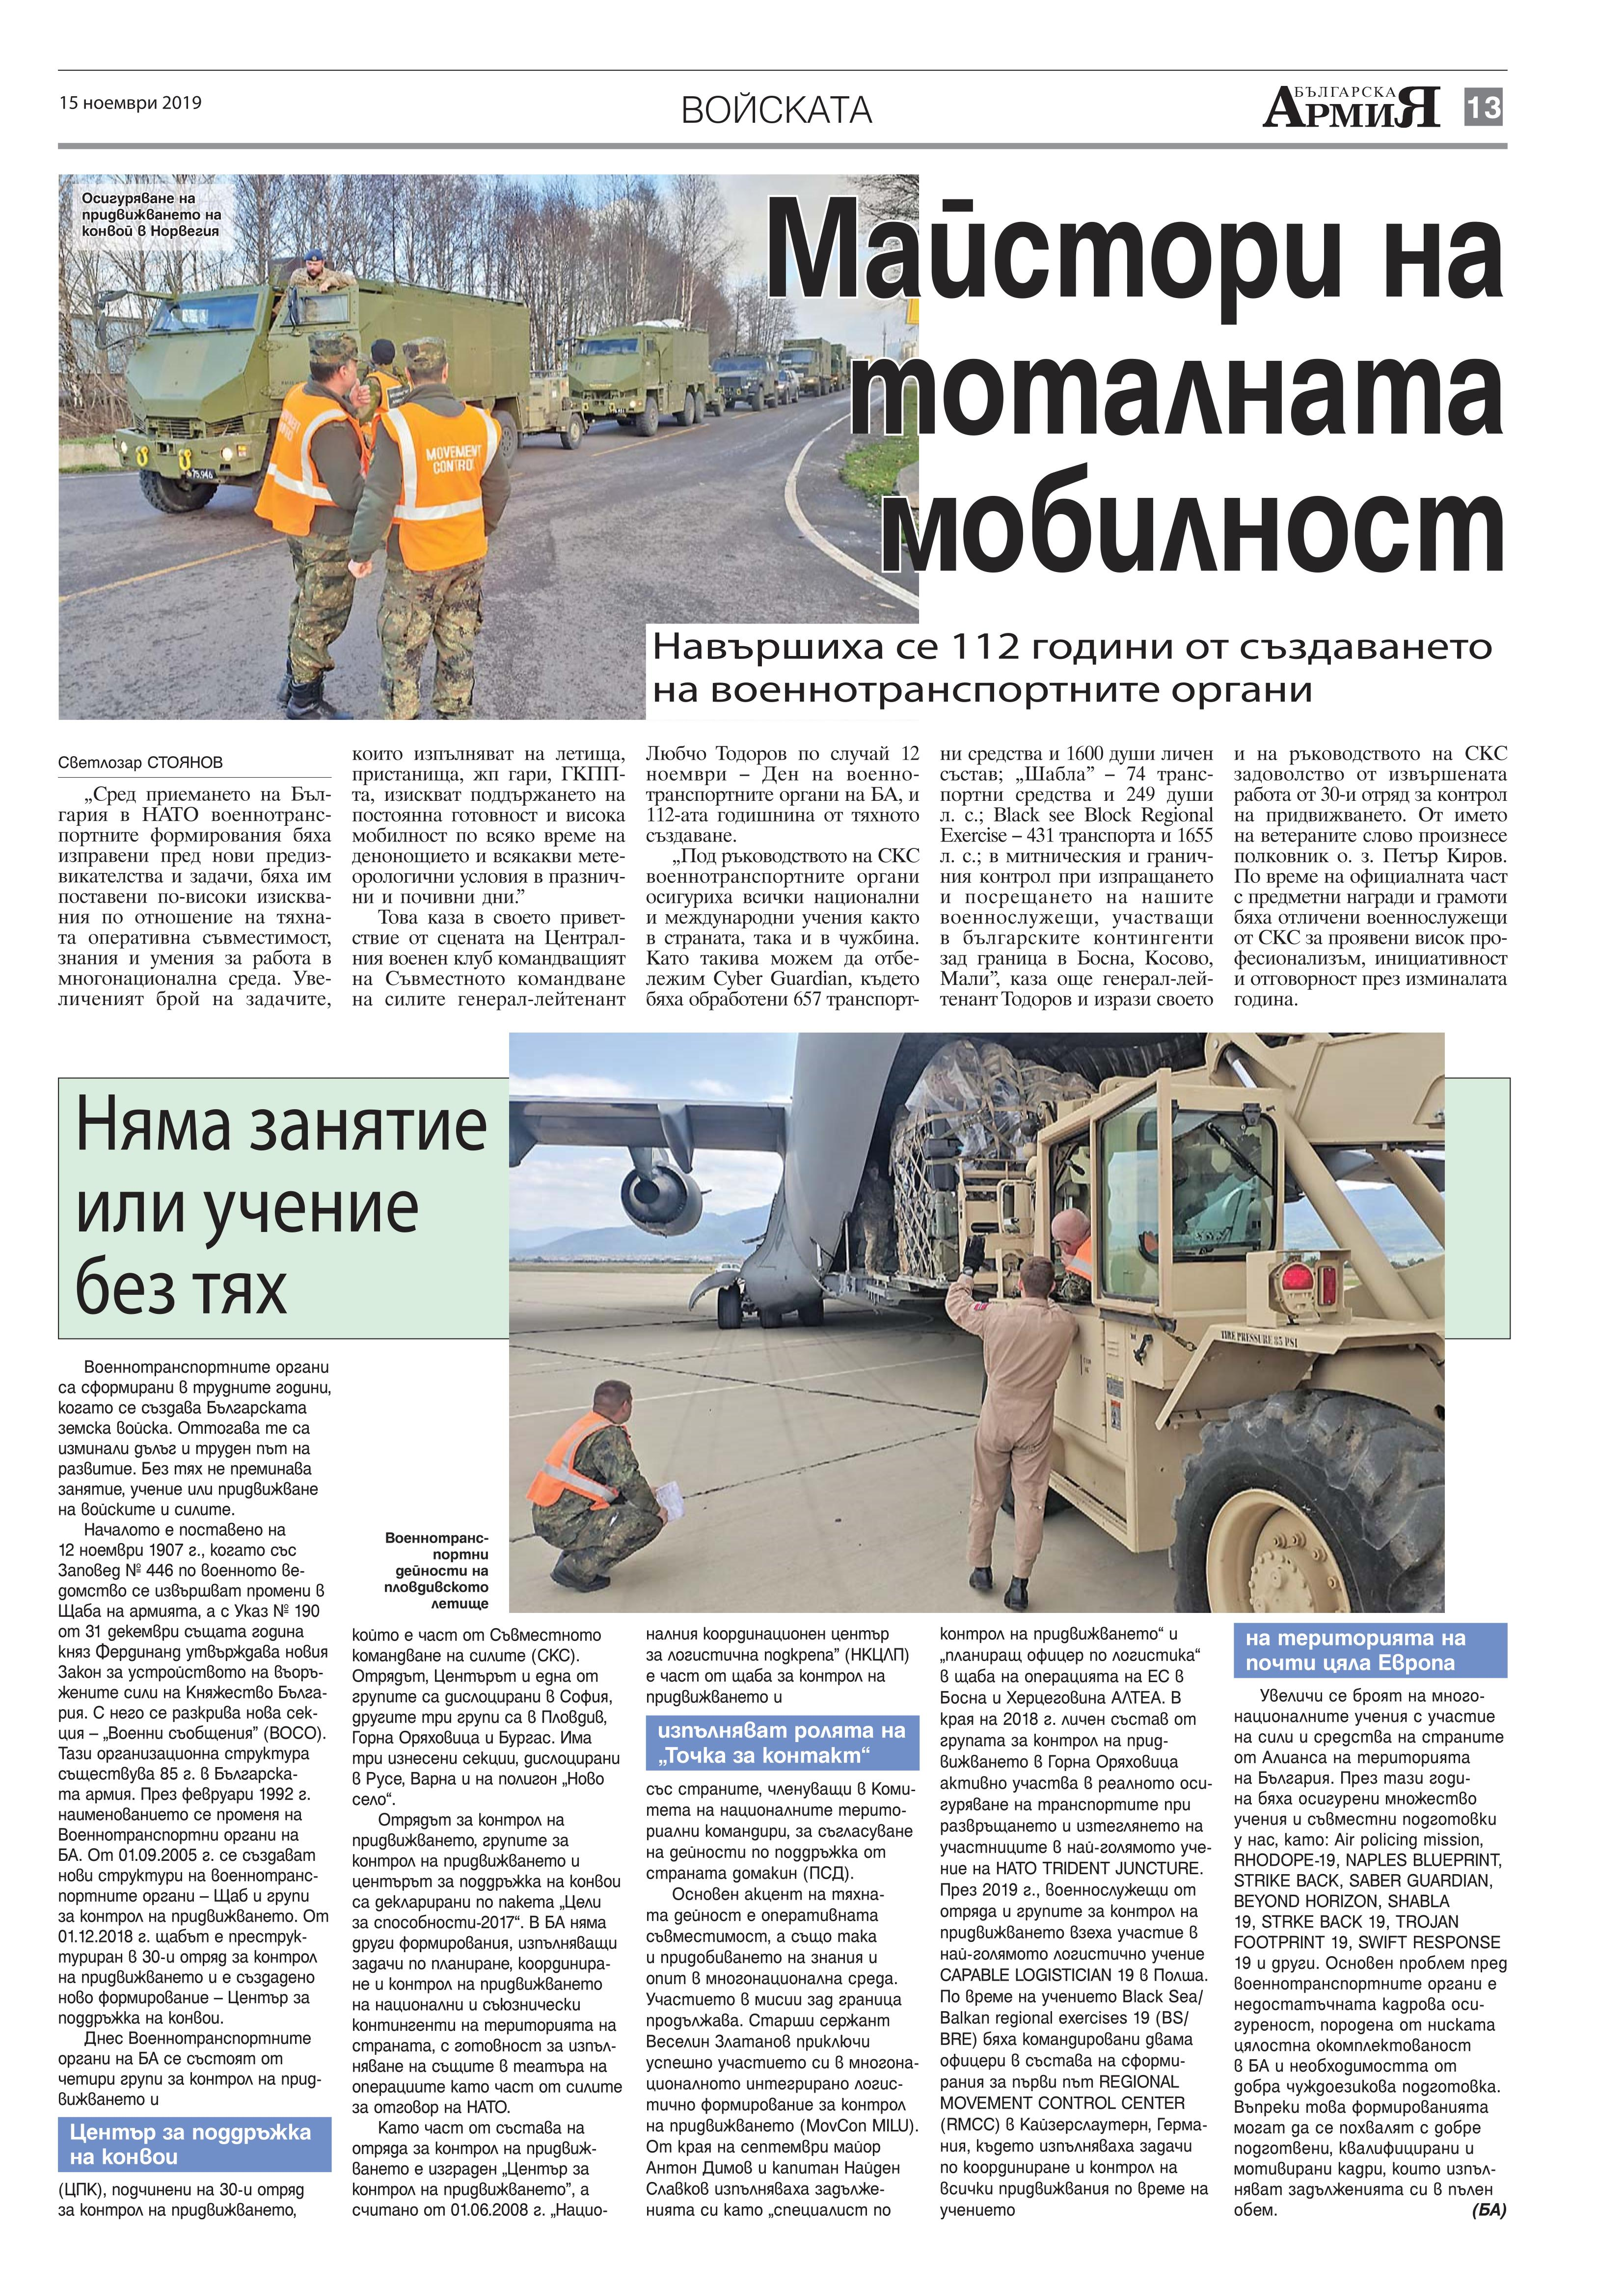 https://armymedia.bg/wp-content/uploads/2015/06/13.page1_-116.jpg